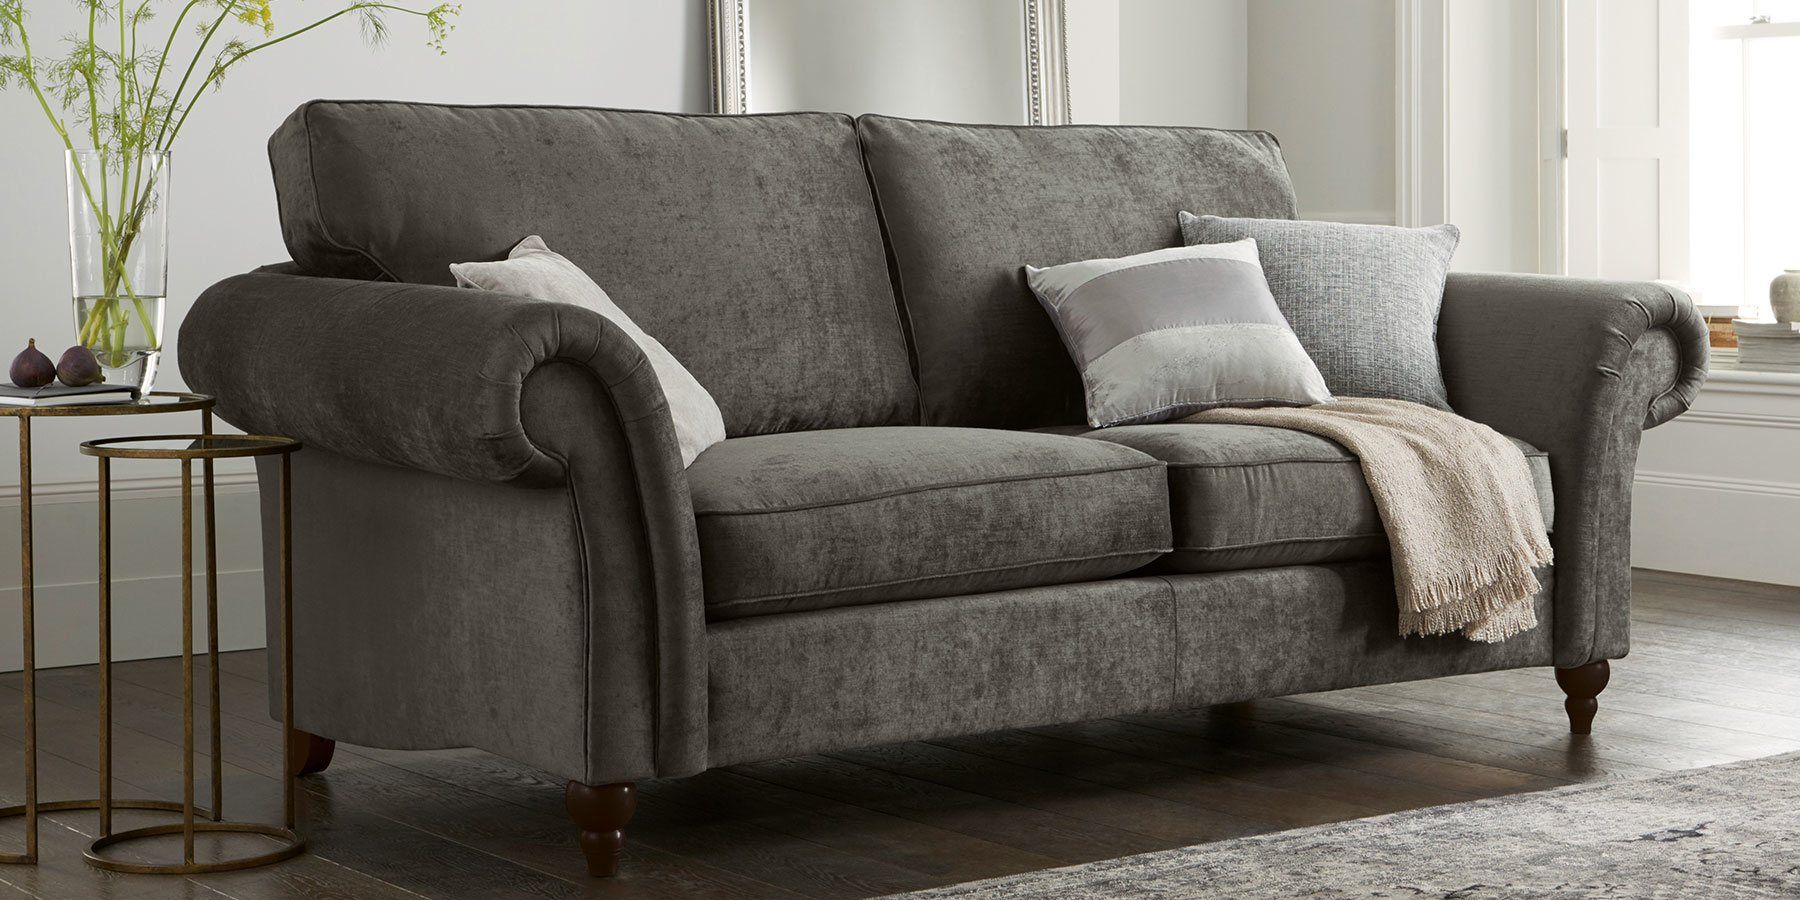 buy gosford medium sofa 3 seats soft marl mid french grey lowturned light from the next uk. Black Bedroom Furniture Sets. Home Design Ideas